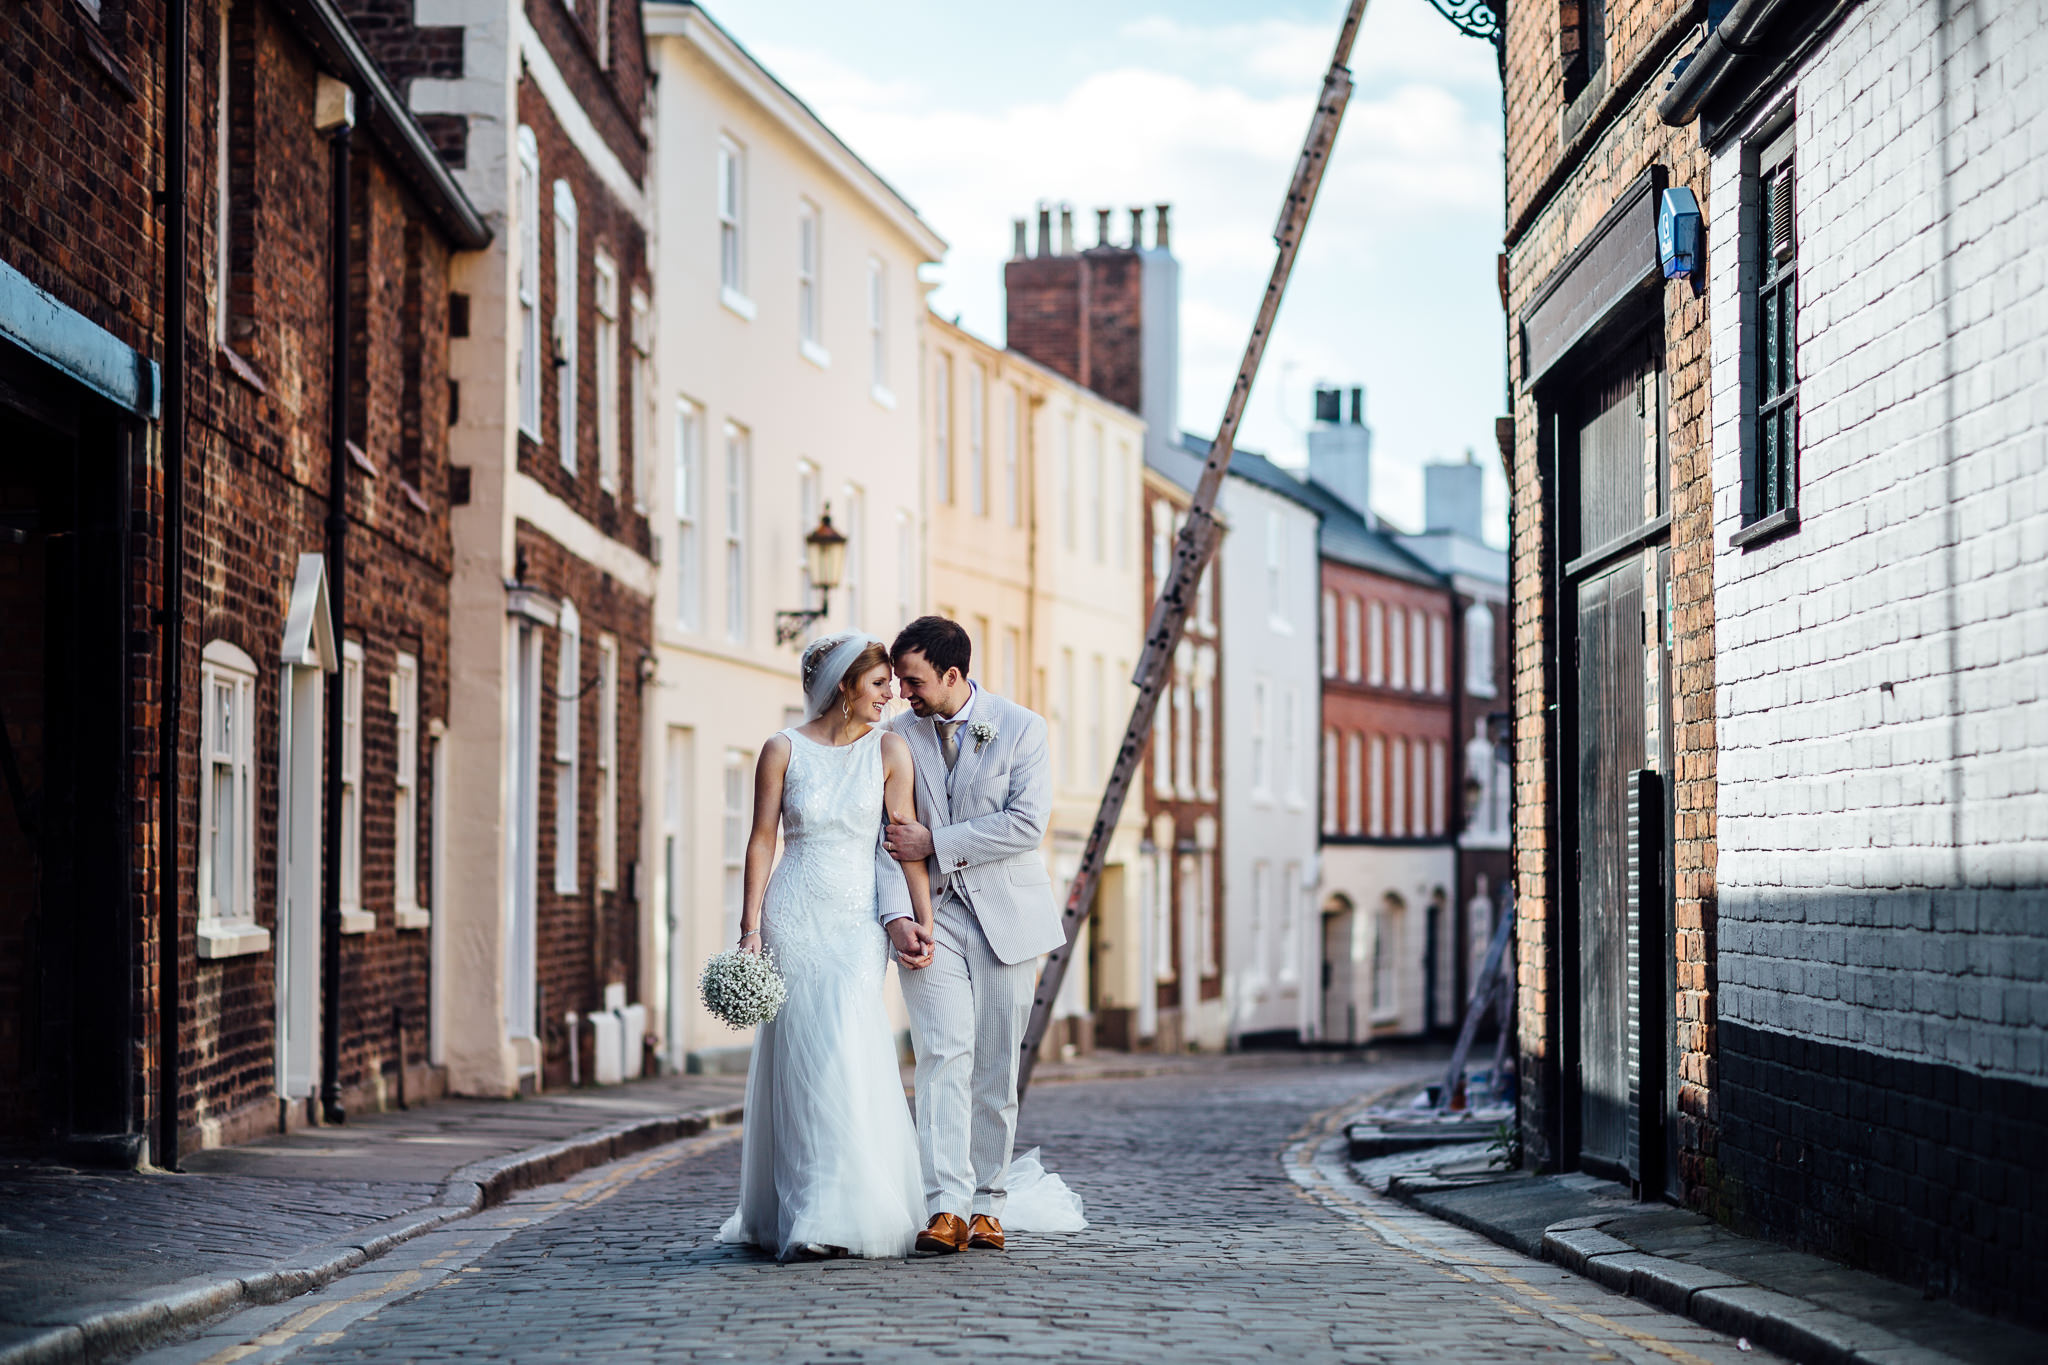 Chester-Cheshire-Creative-natural-wedding-photography-90052